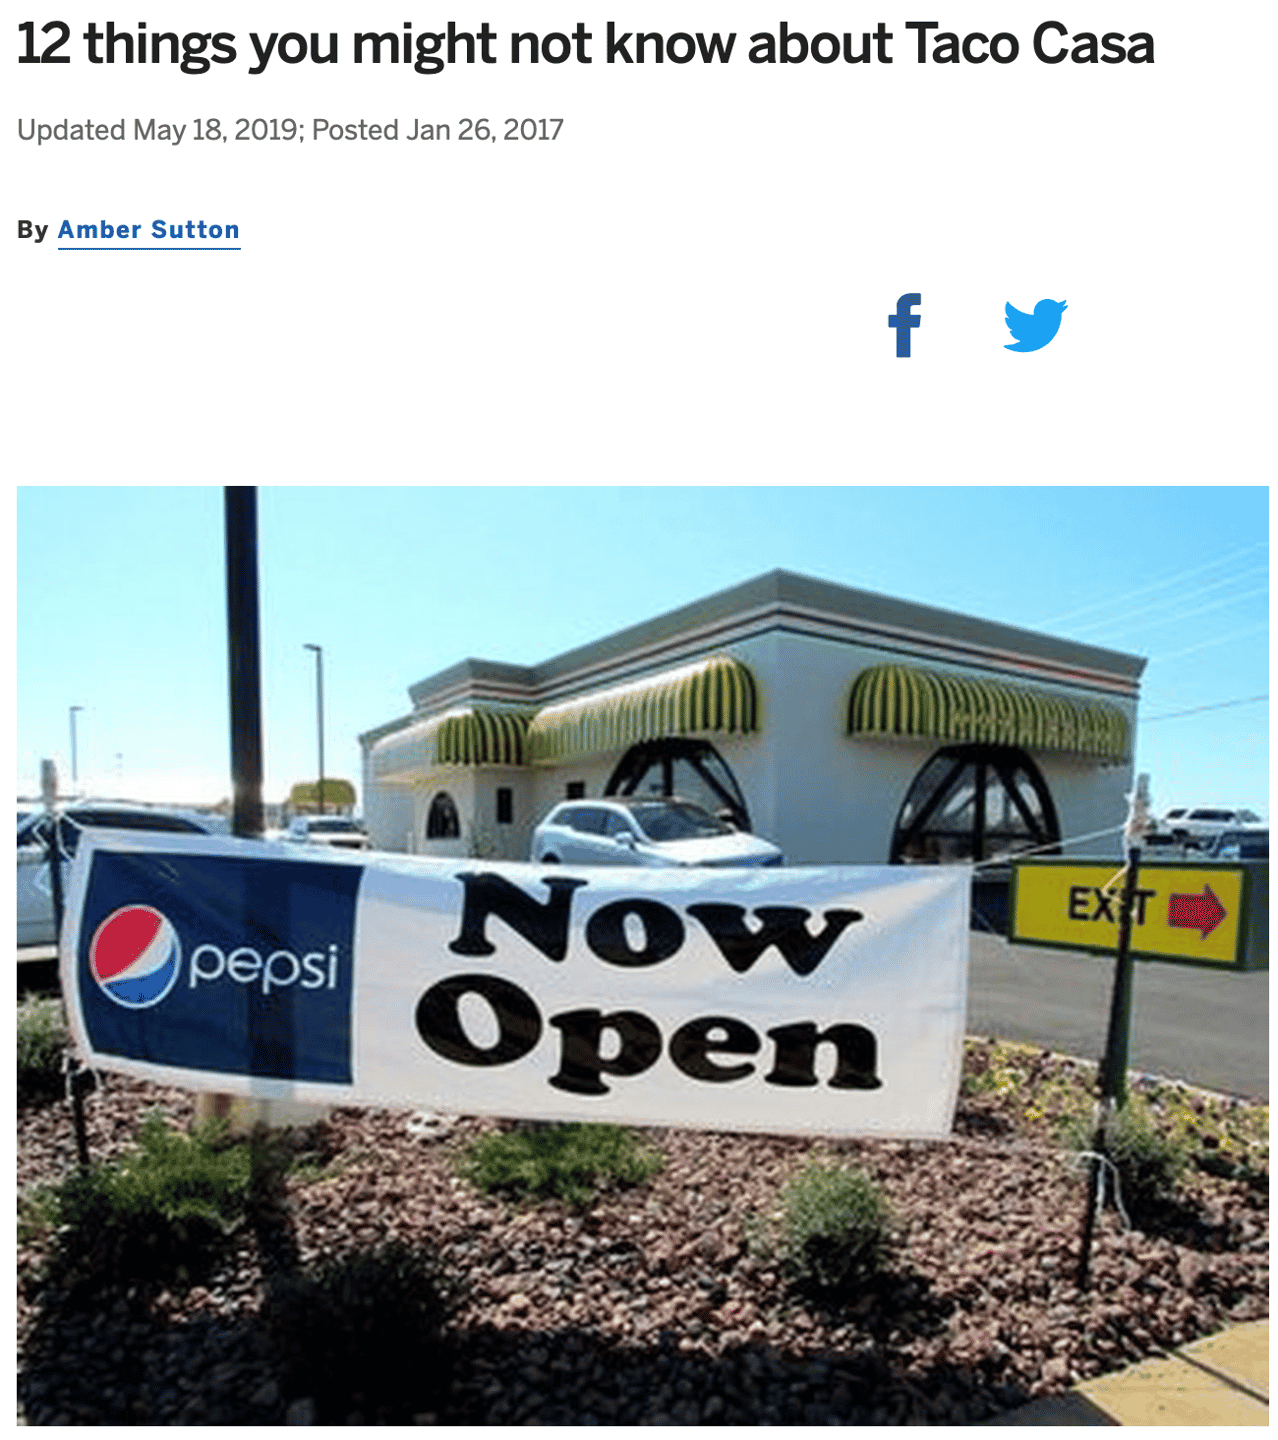 12 things you might not know about Taco Casa